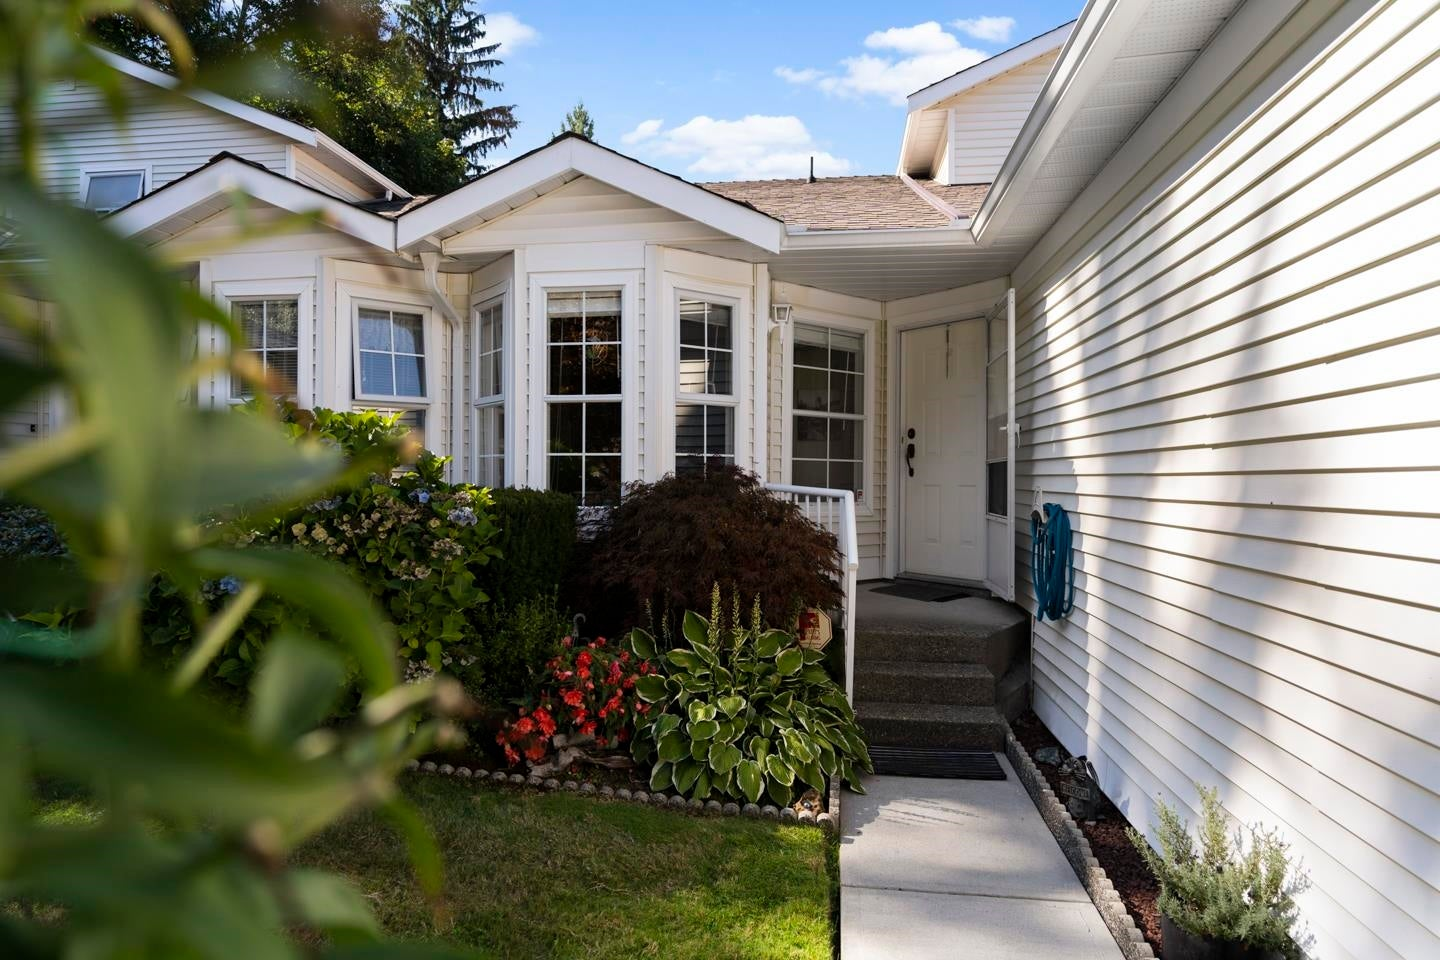 15 6537 138 STREET - East Newton Townhouse for sale, 2 Bedrooms (R2615299) - #1